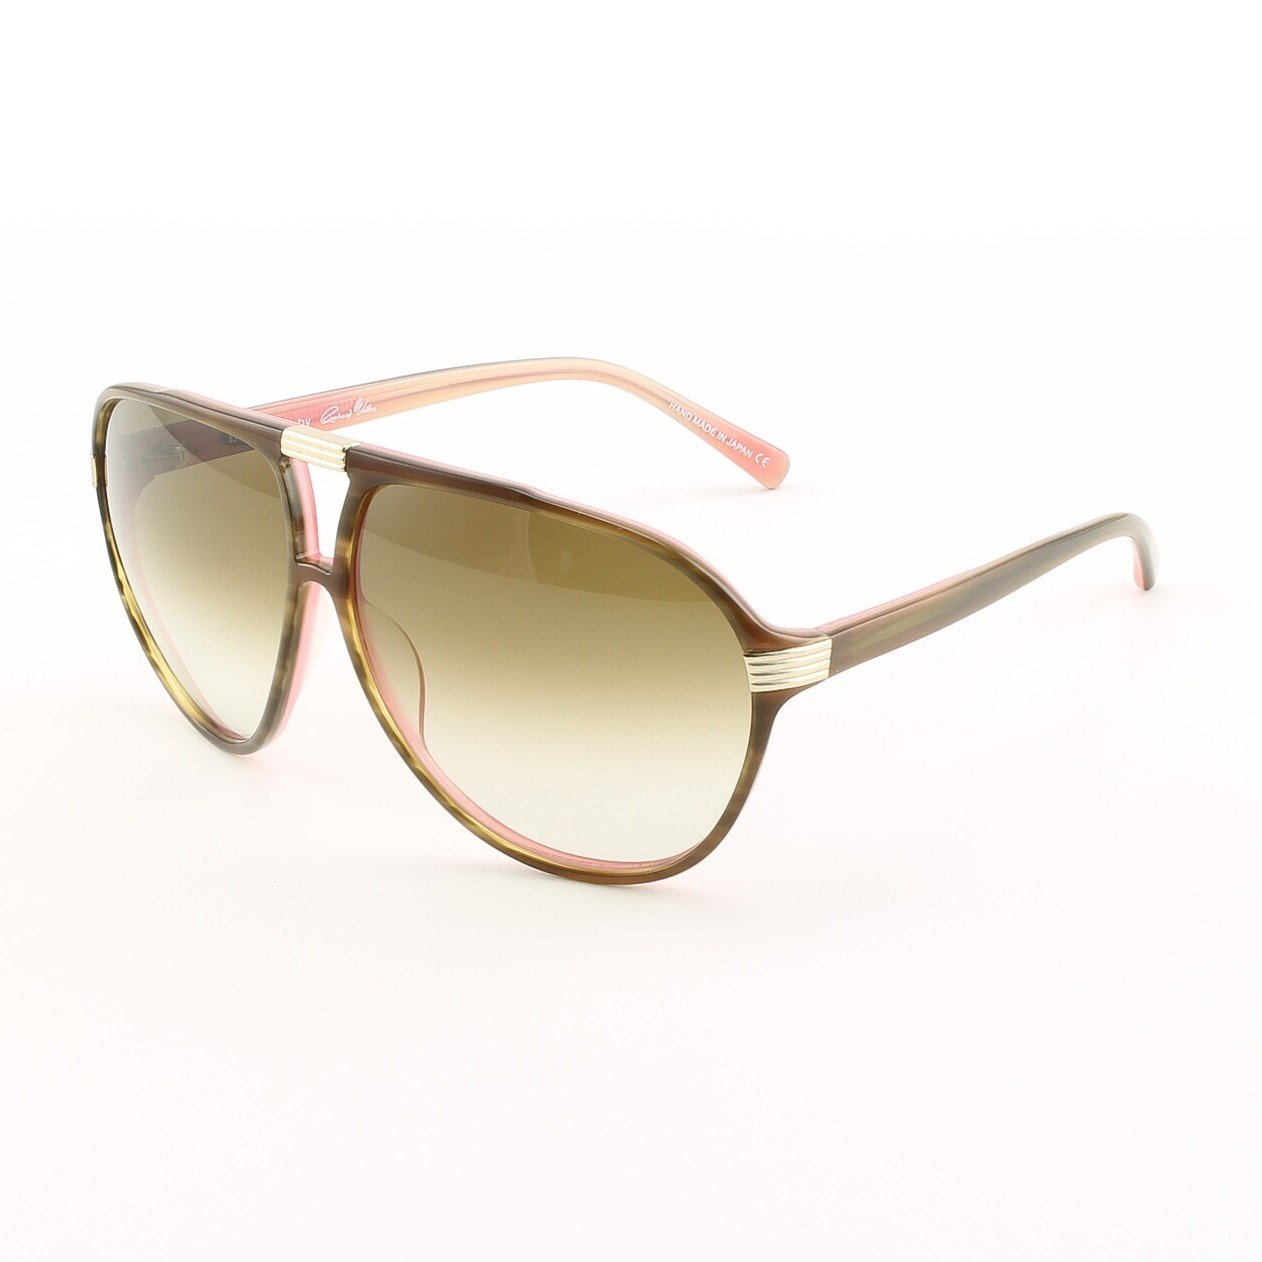 Blinde The Shakedown Unisex Aviator Sunglasses Col. Tortoise Flamingo with Brown Gradient Lenses